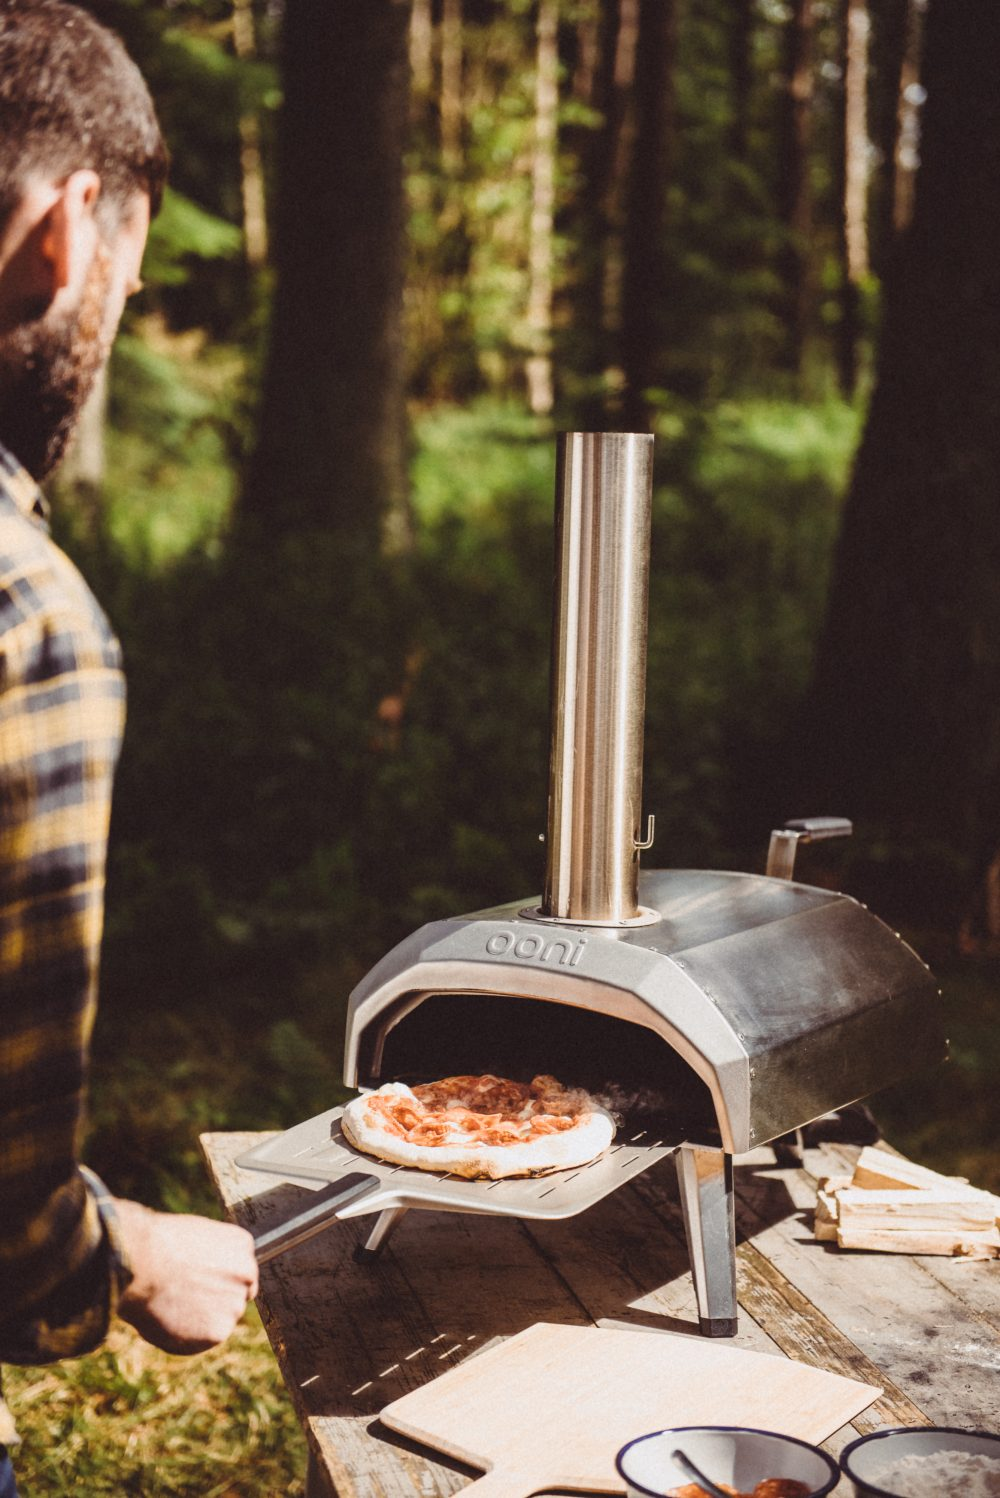 Ooni Karu Portable Wood Fire Pizza Oven | The Coolector